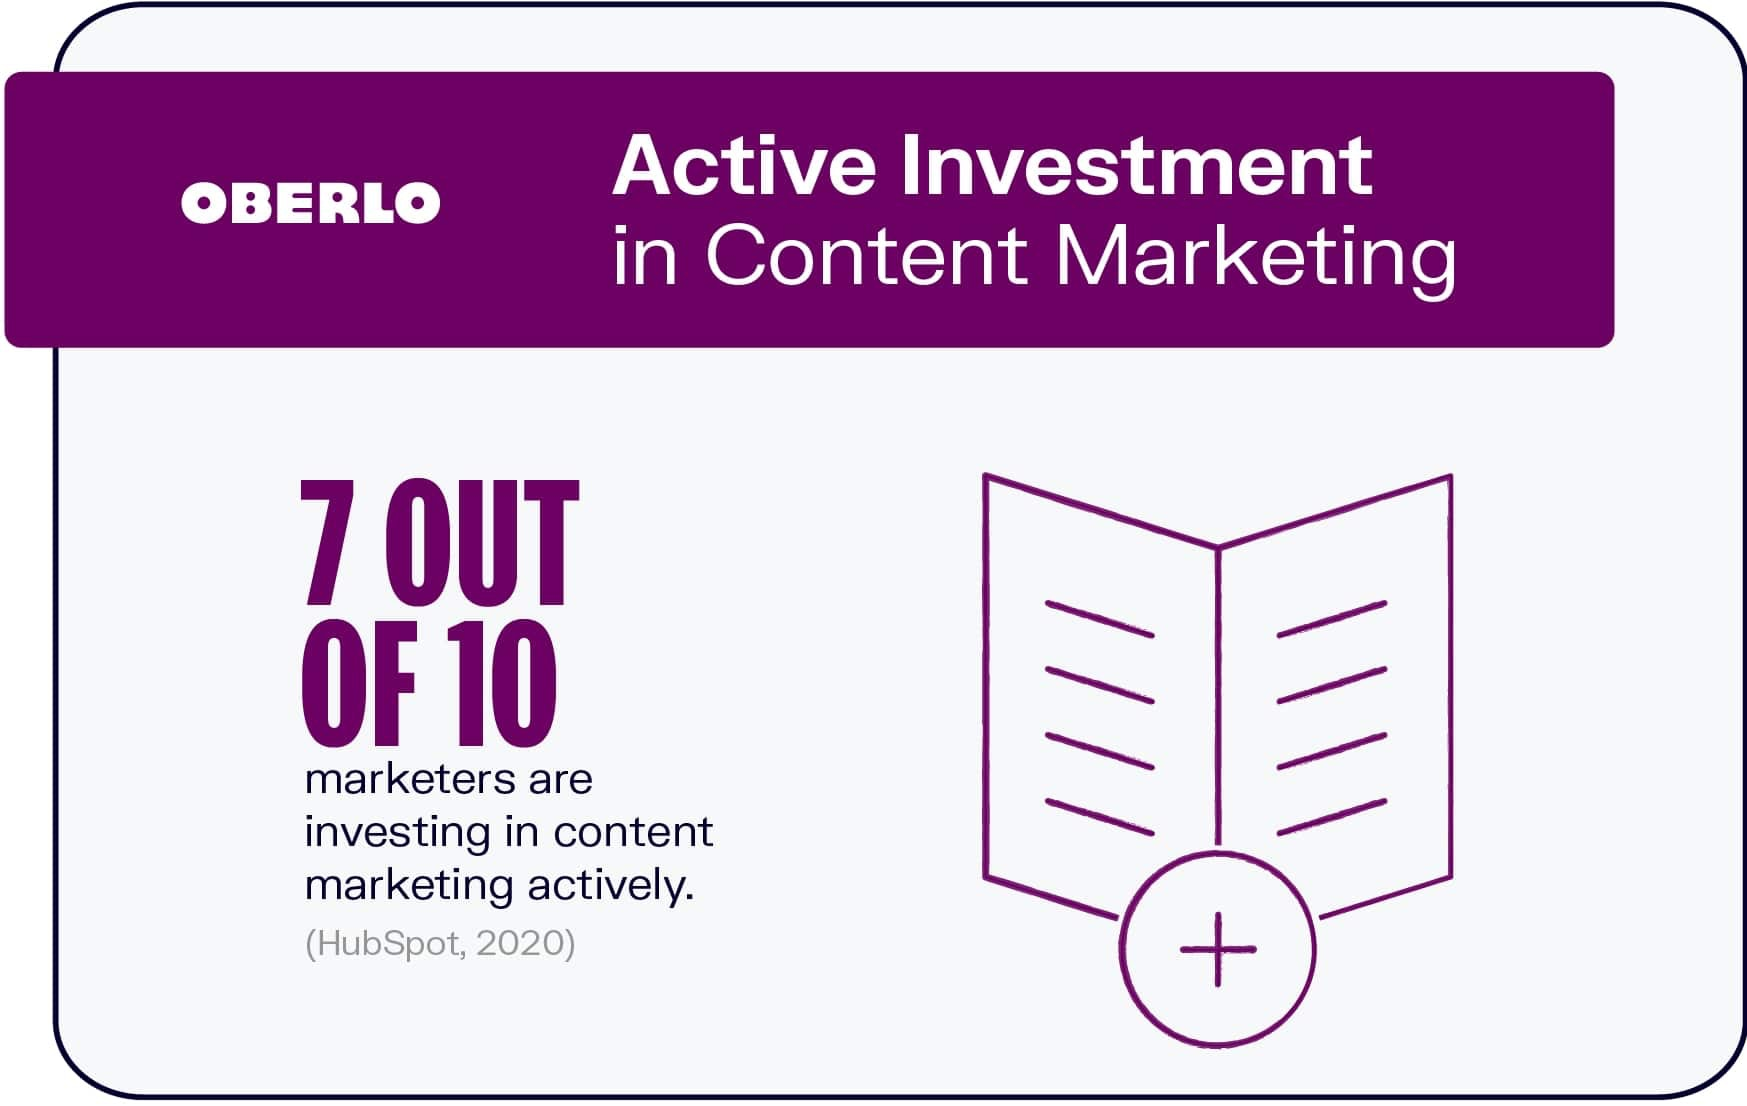 Active Investment in Content Marketing